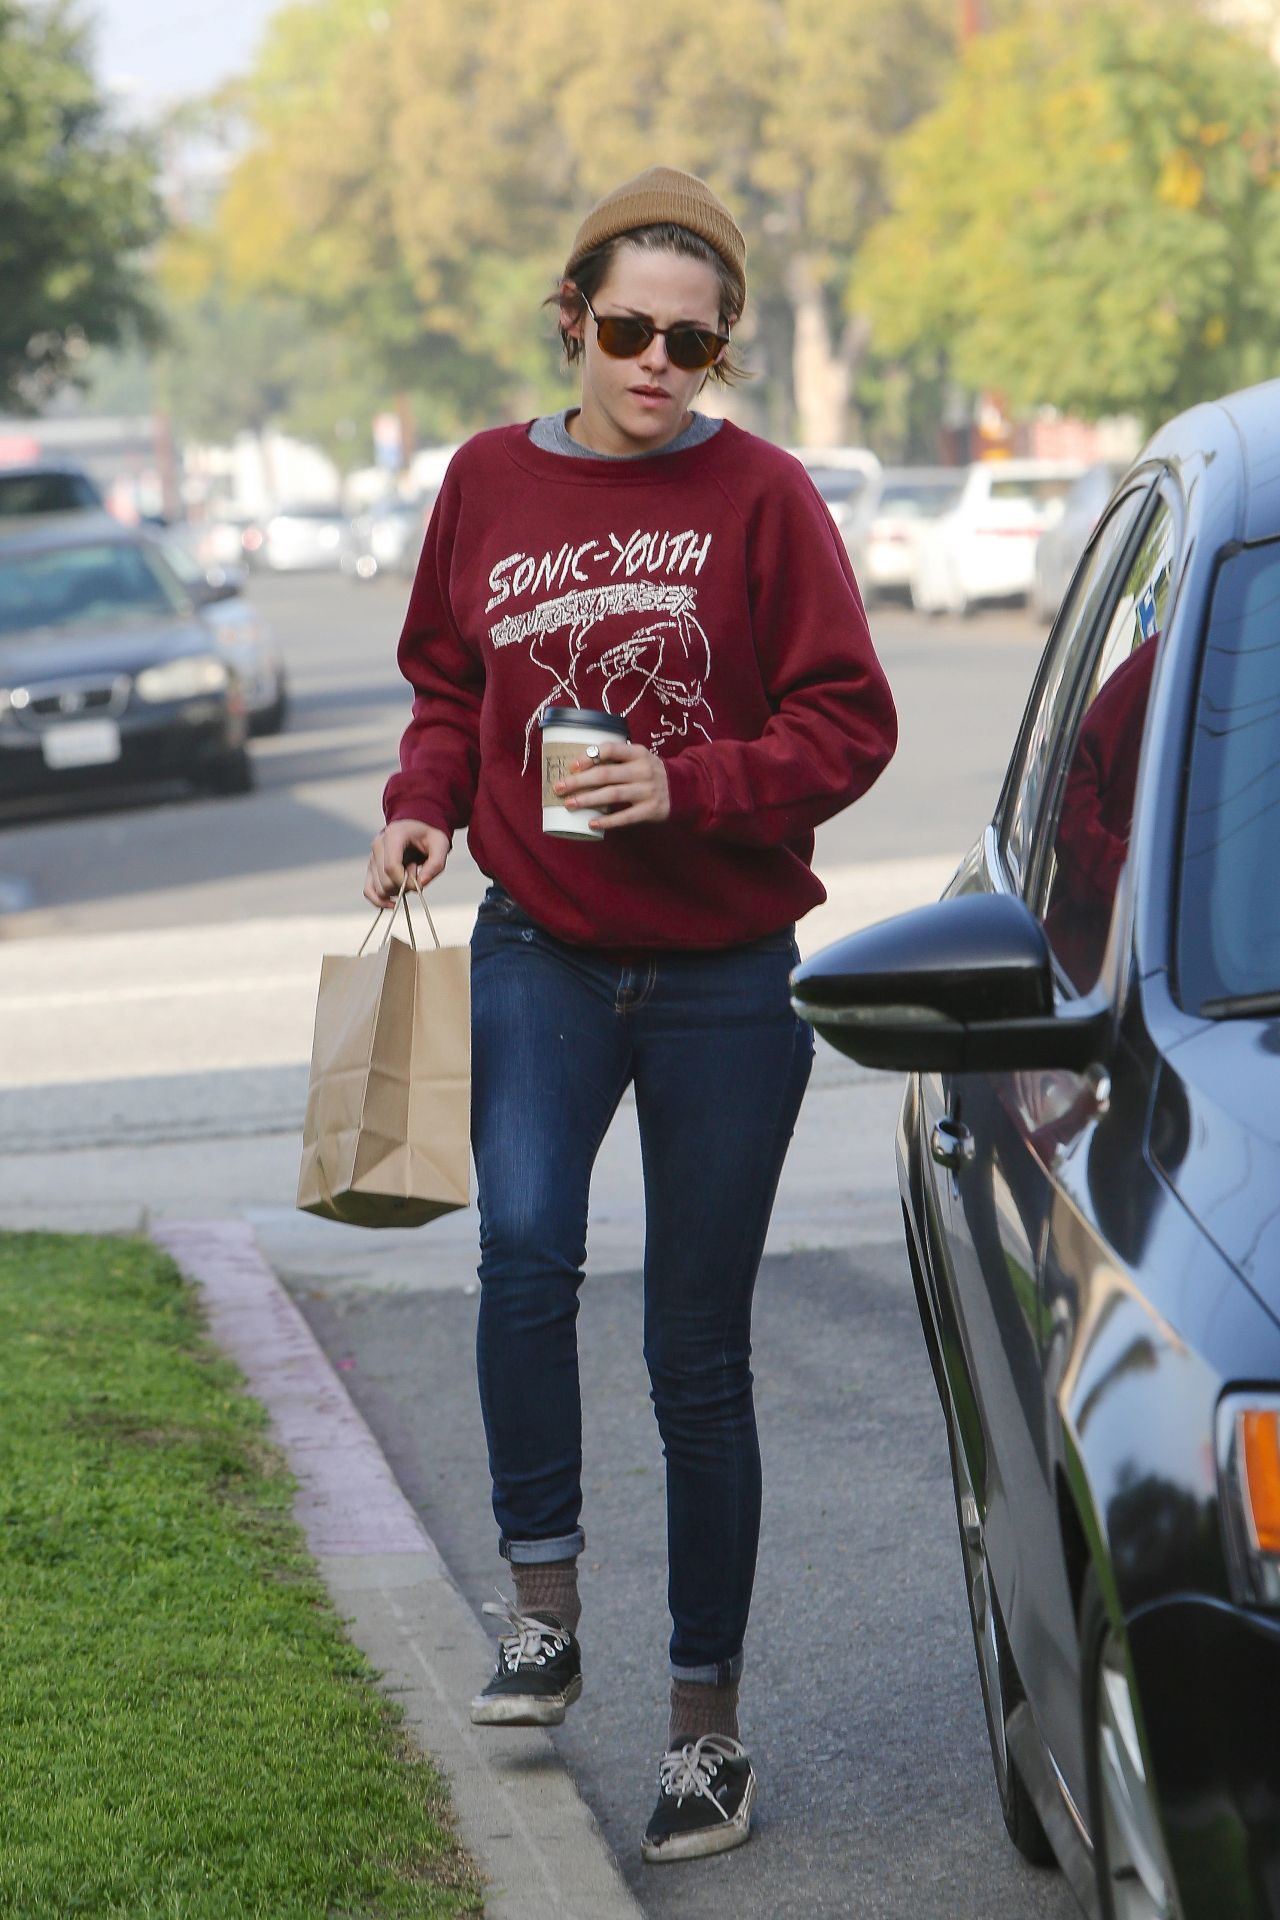 Kristen Stewart Famous For Being In Tomboy Styled Casual Clothes Tomboy Pinterest Kristen